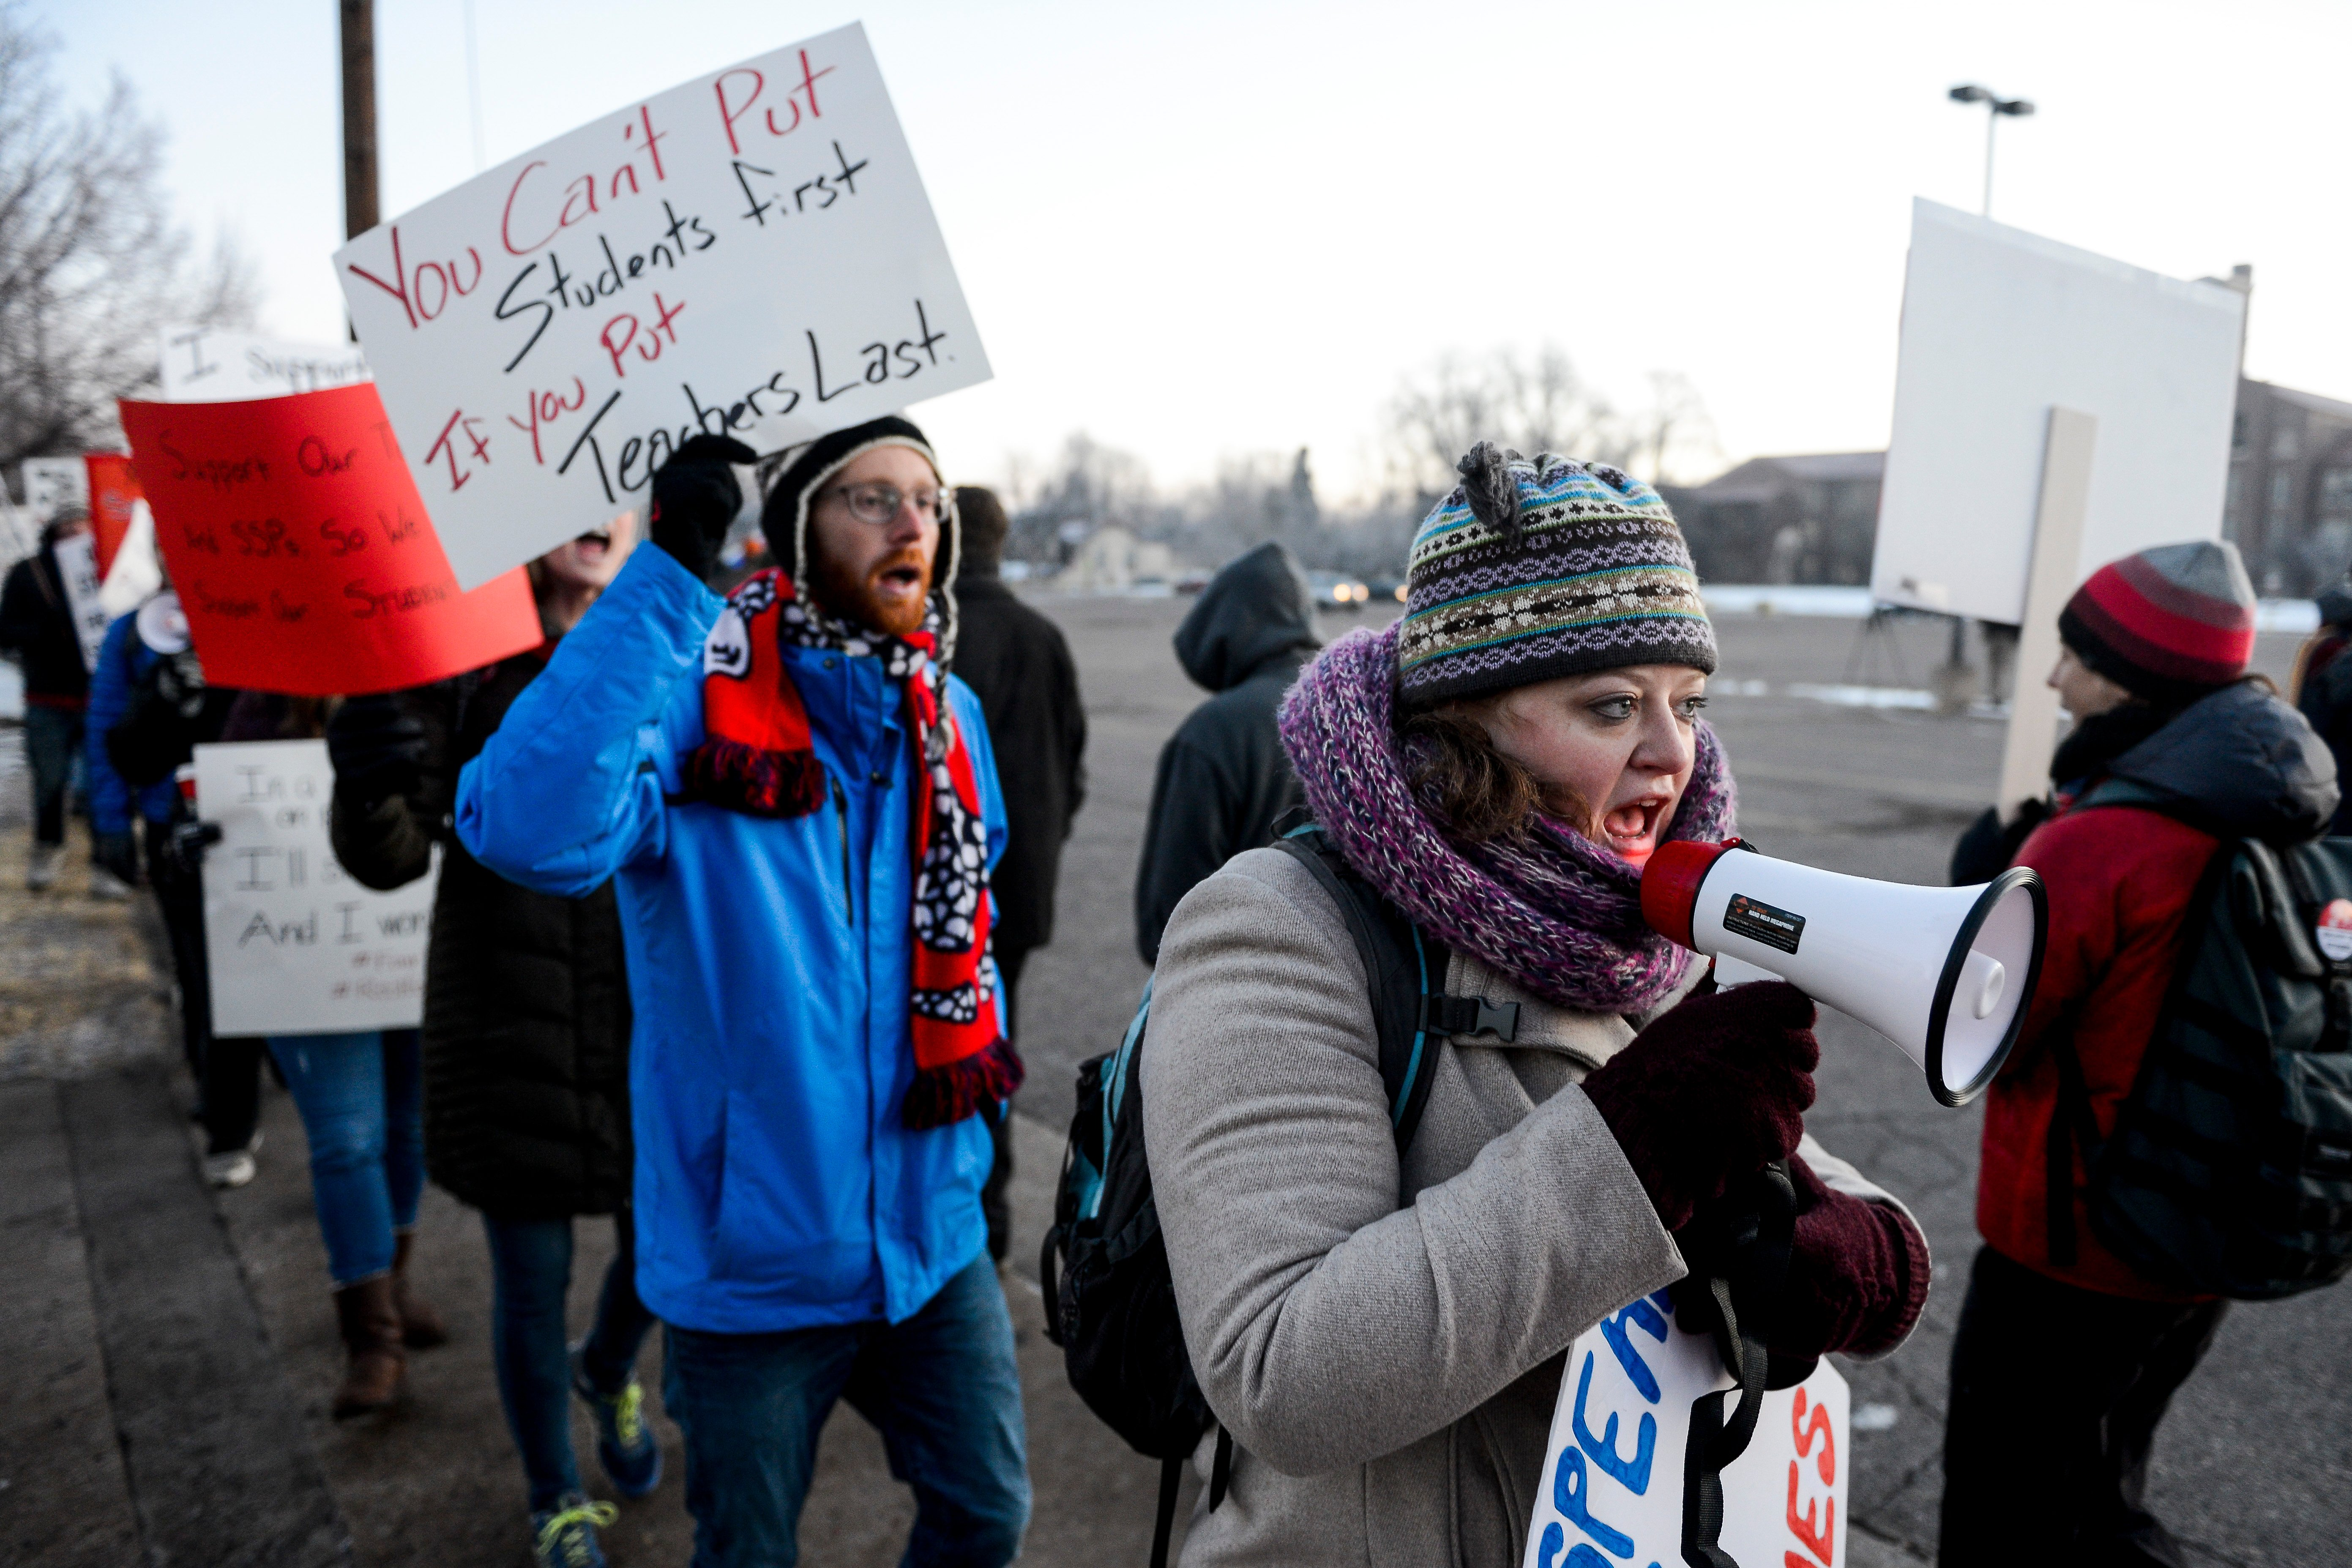 DENVER, CO - FEBRUARY 11: Denver Public Schools teachers and members of the community picket outside South High School on February 11, 2019 in Denver, Colorado. (Michael Ciaglo/Getty Images)